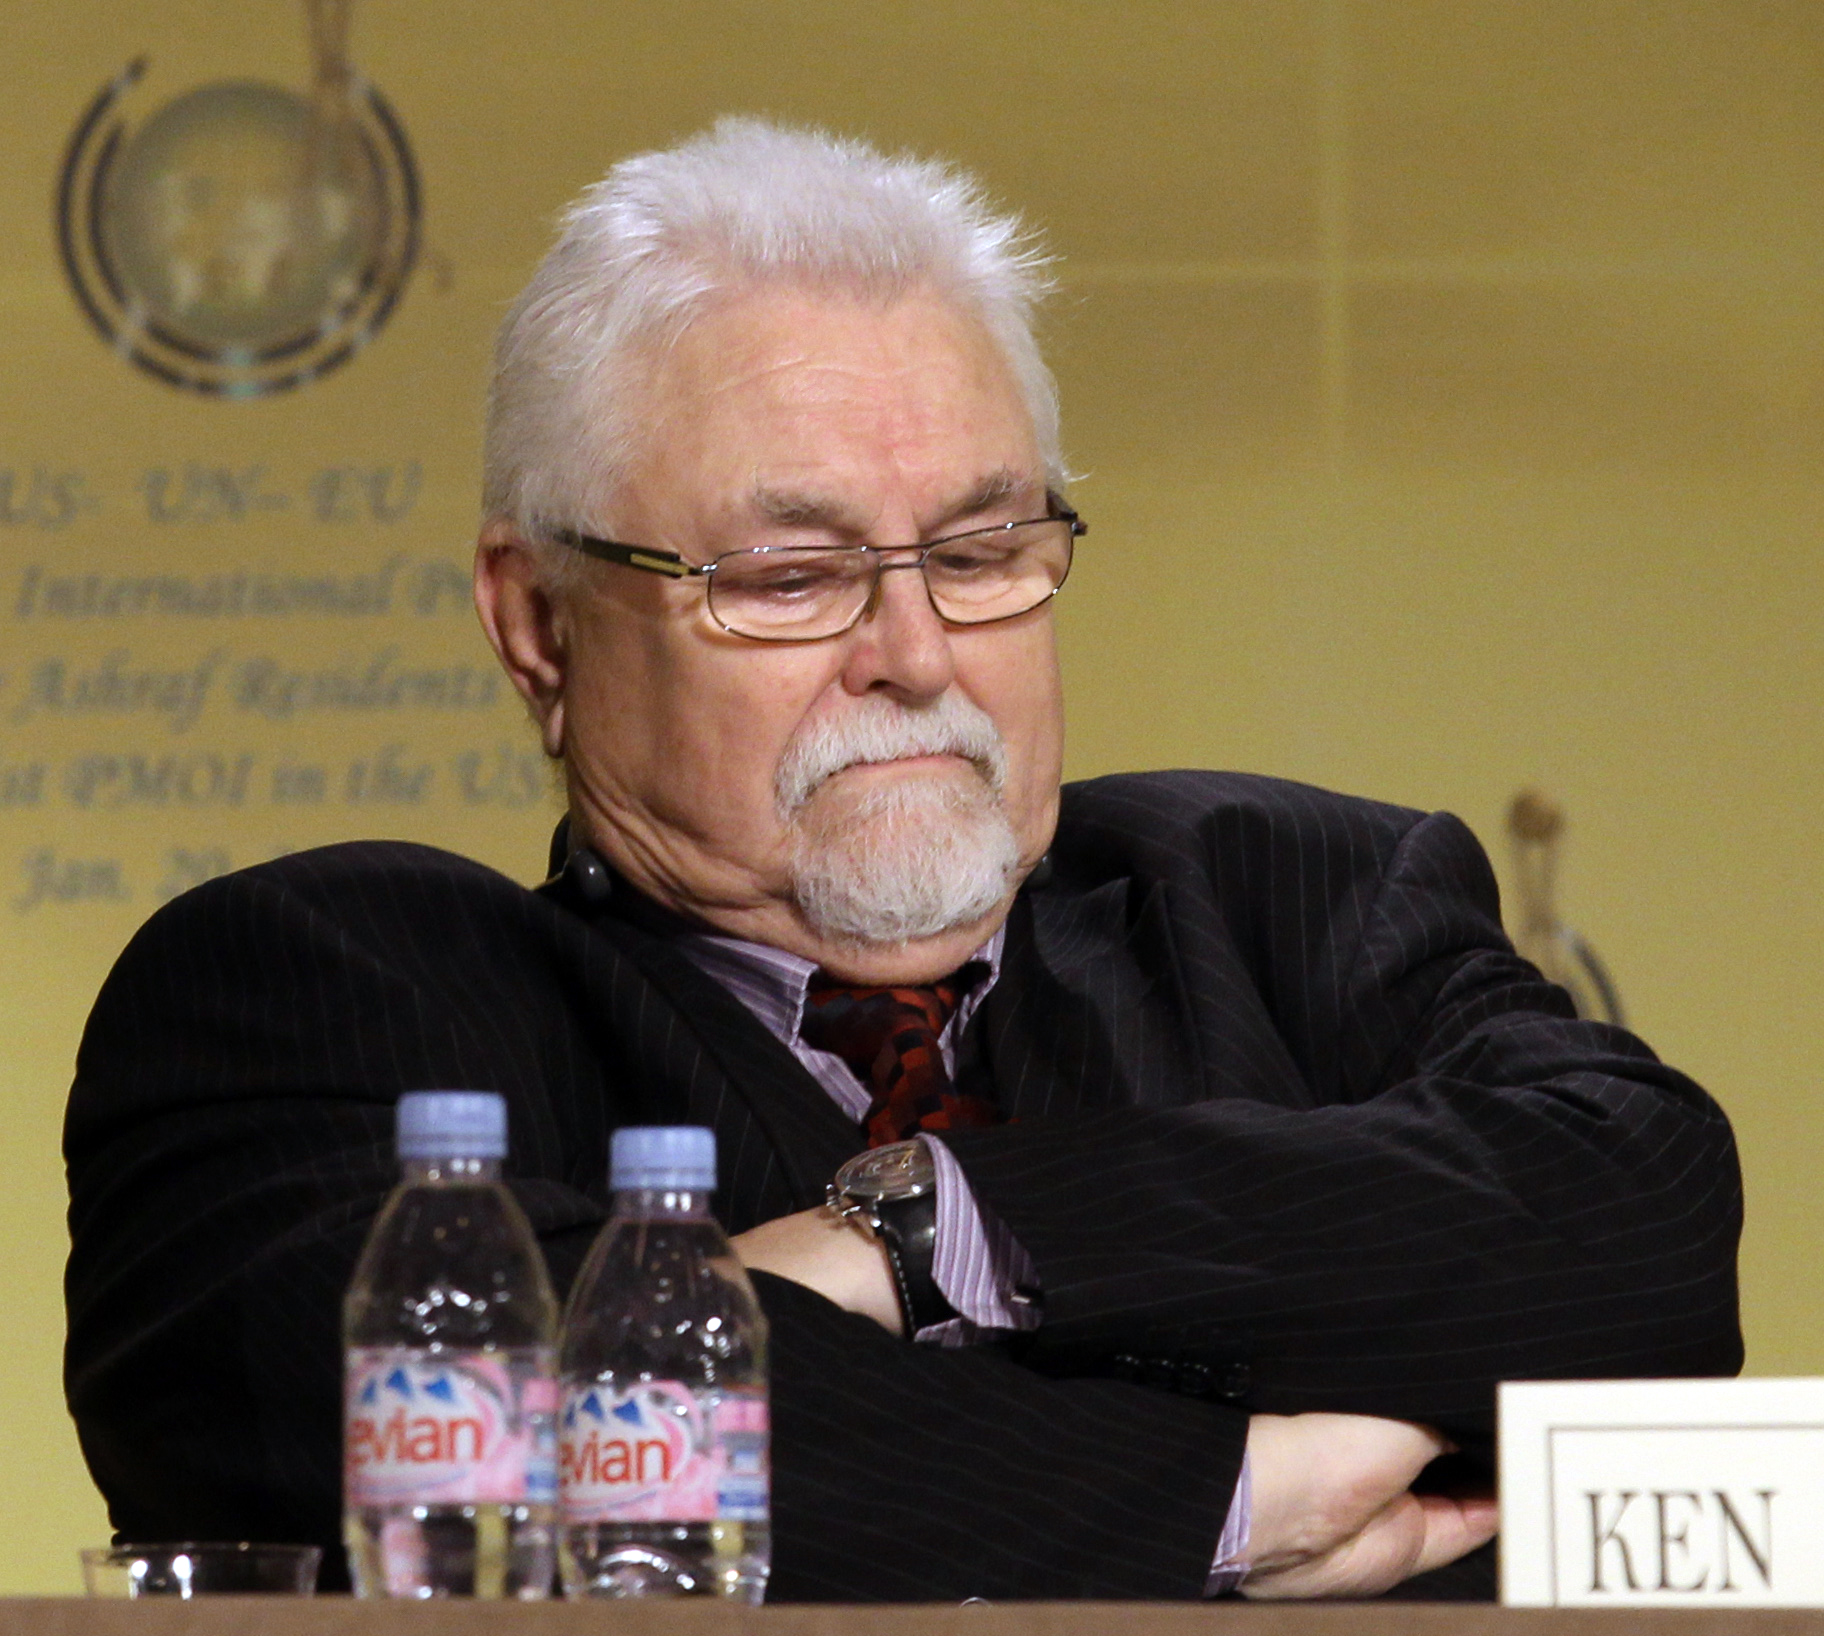 Lord Maginnis, member of the House of Lords.